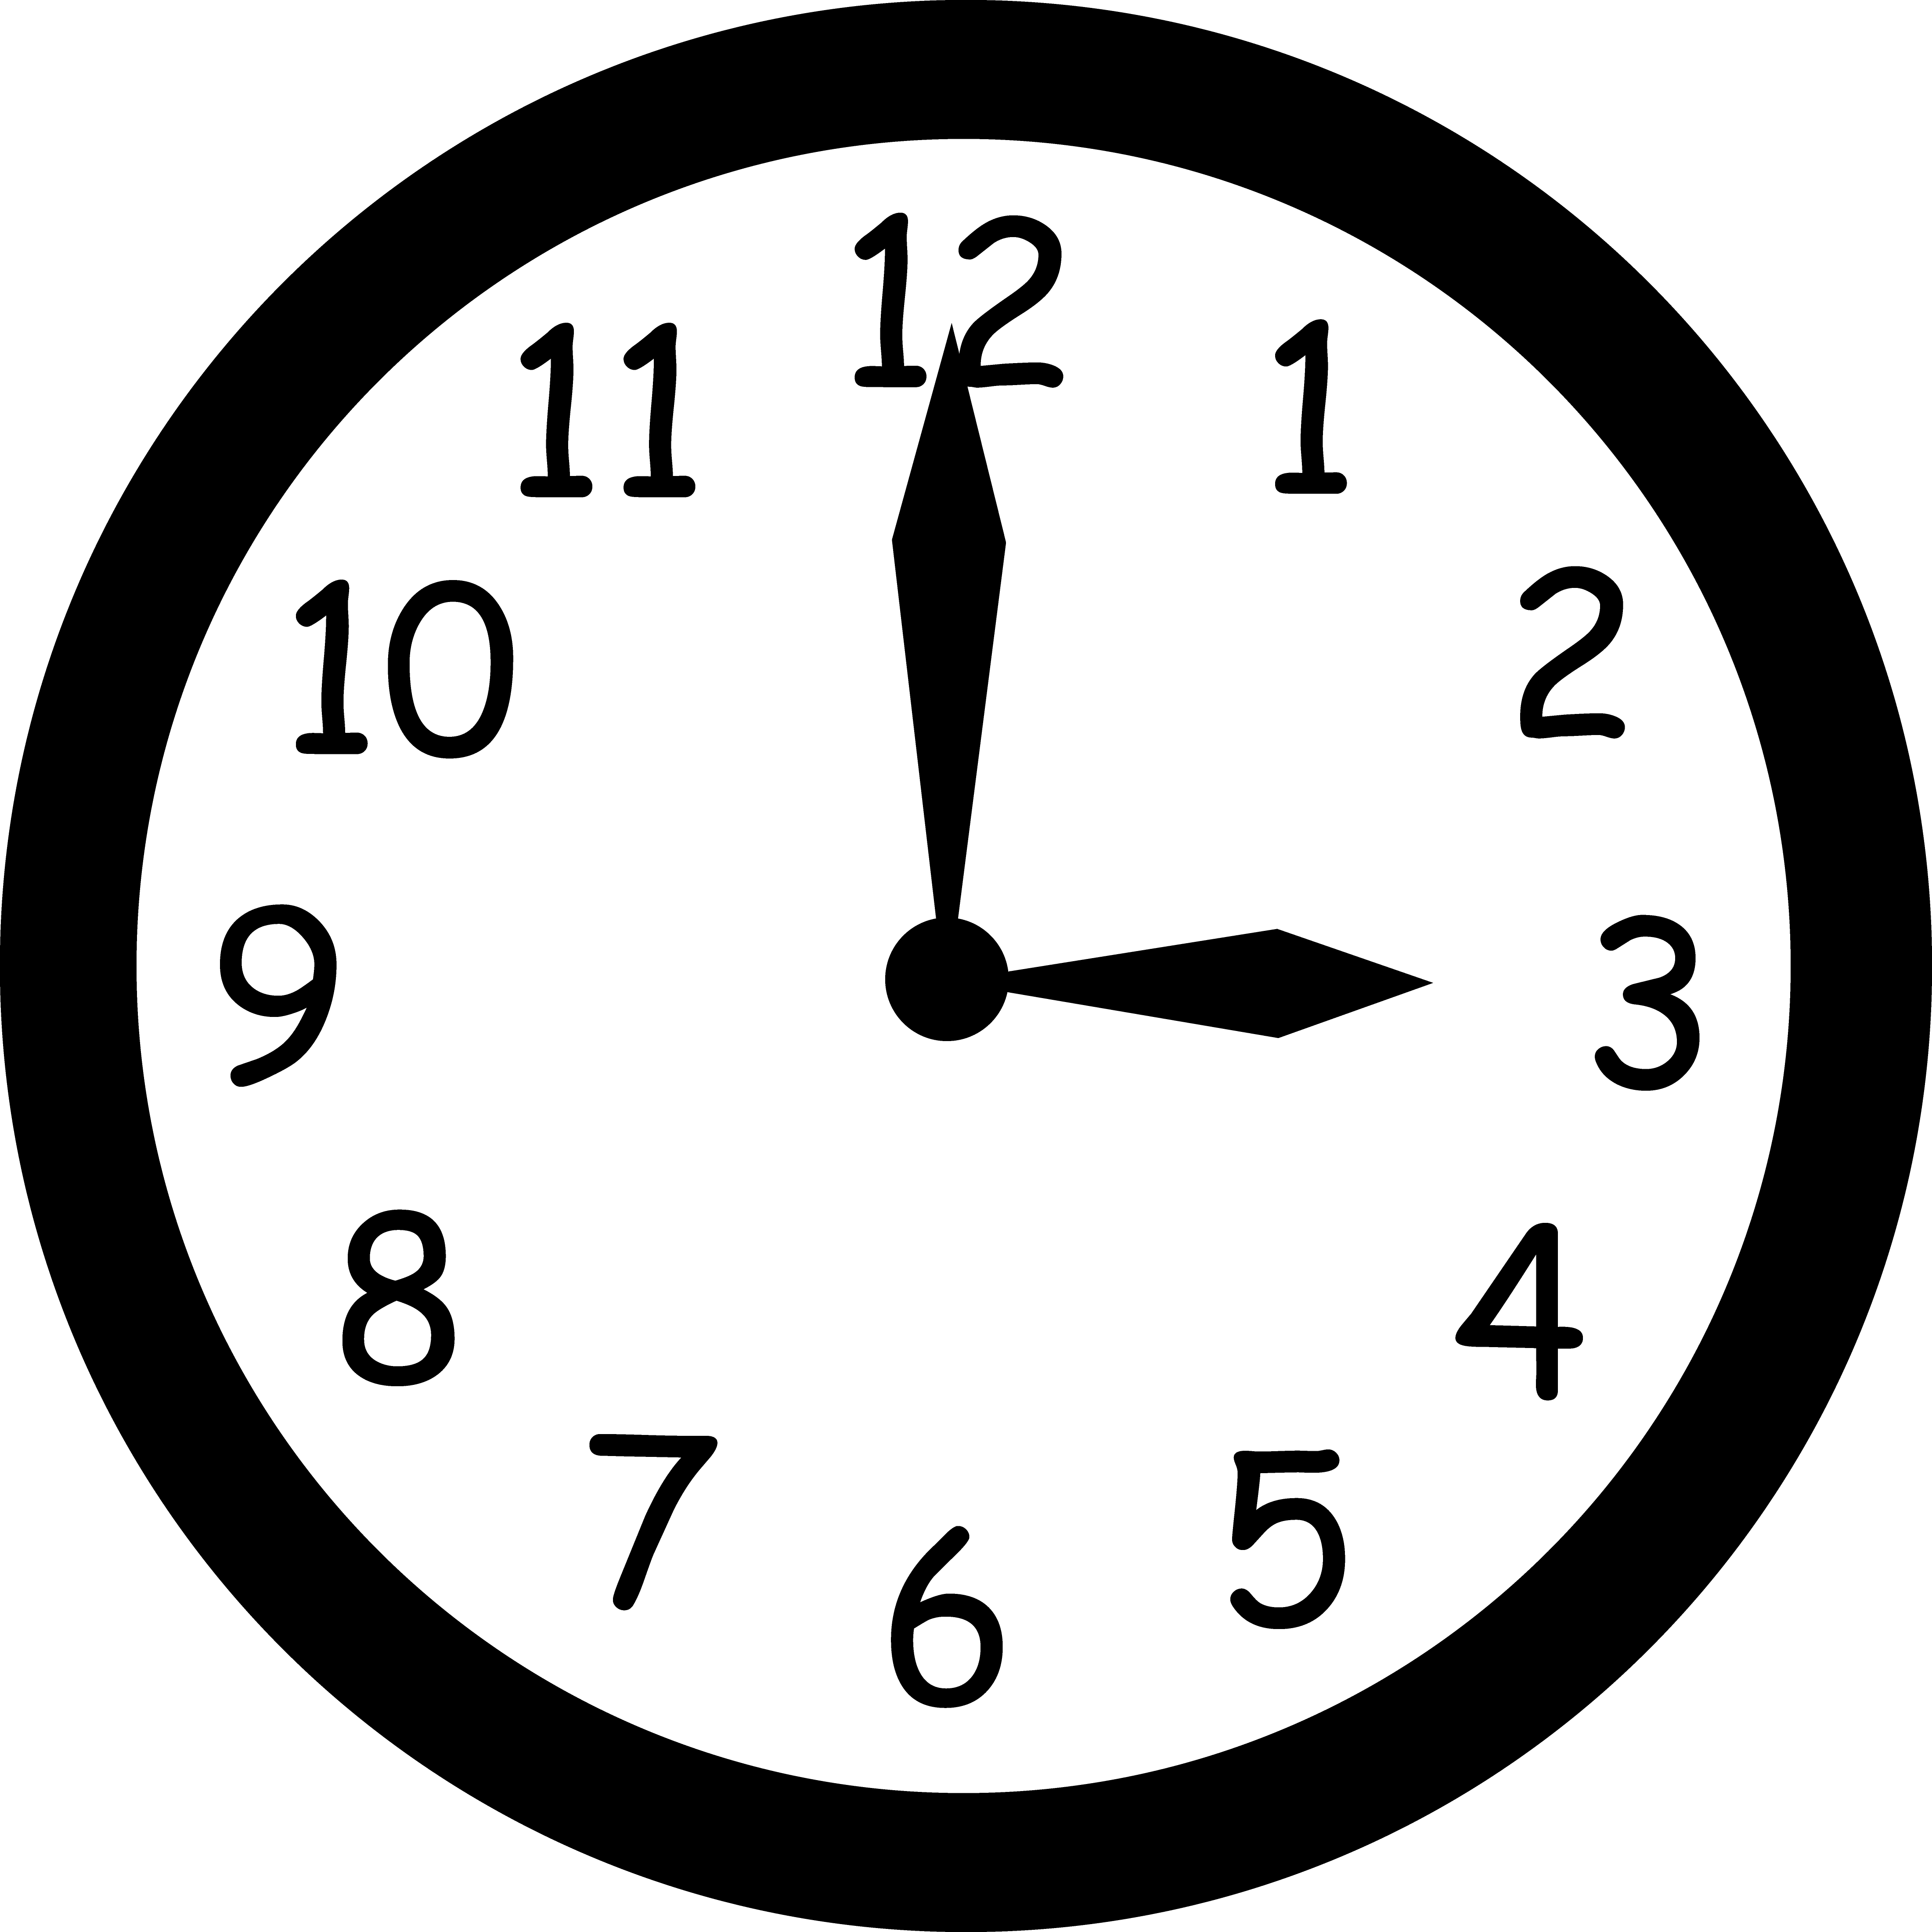 Clock dial clipart graphic free library Free Clock Face Clipart, Download Free Clip Art, Free Clip Art on ... graphic free library